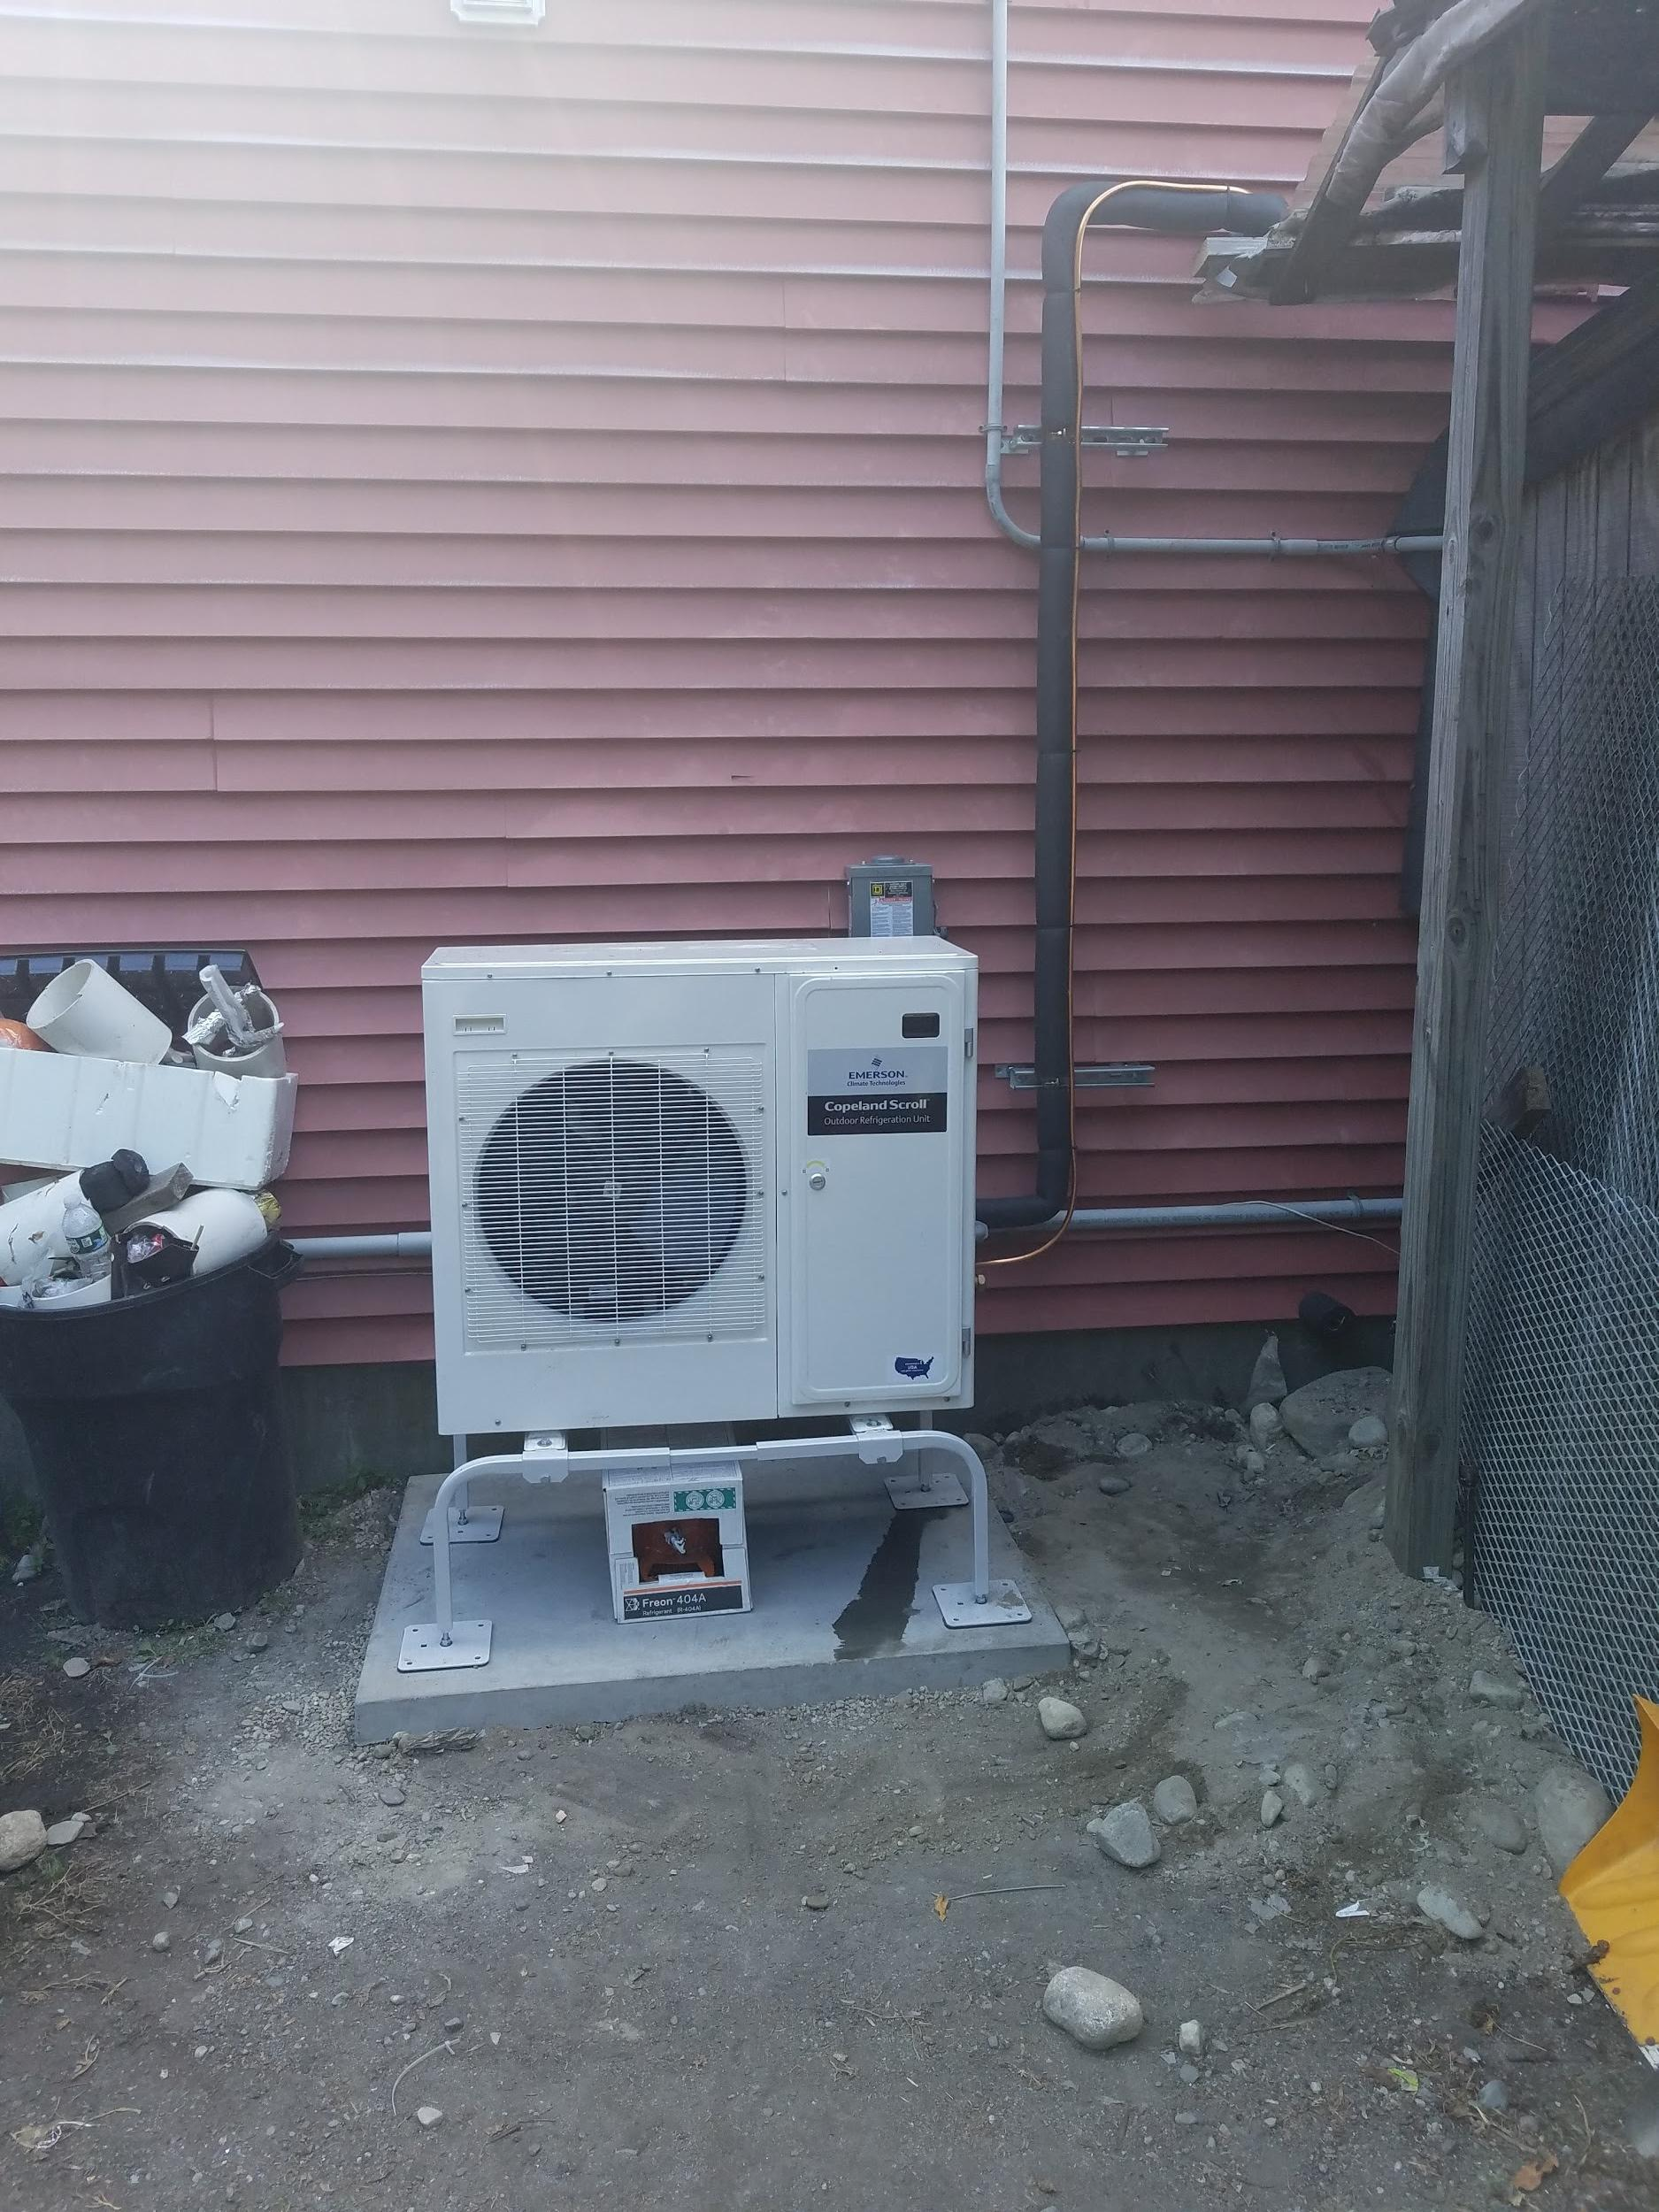 Properly installed condenser unit for a refrigeration system placed on a poured concrete pad.